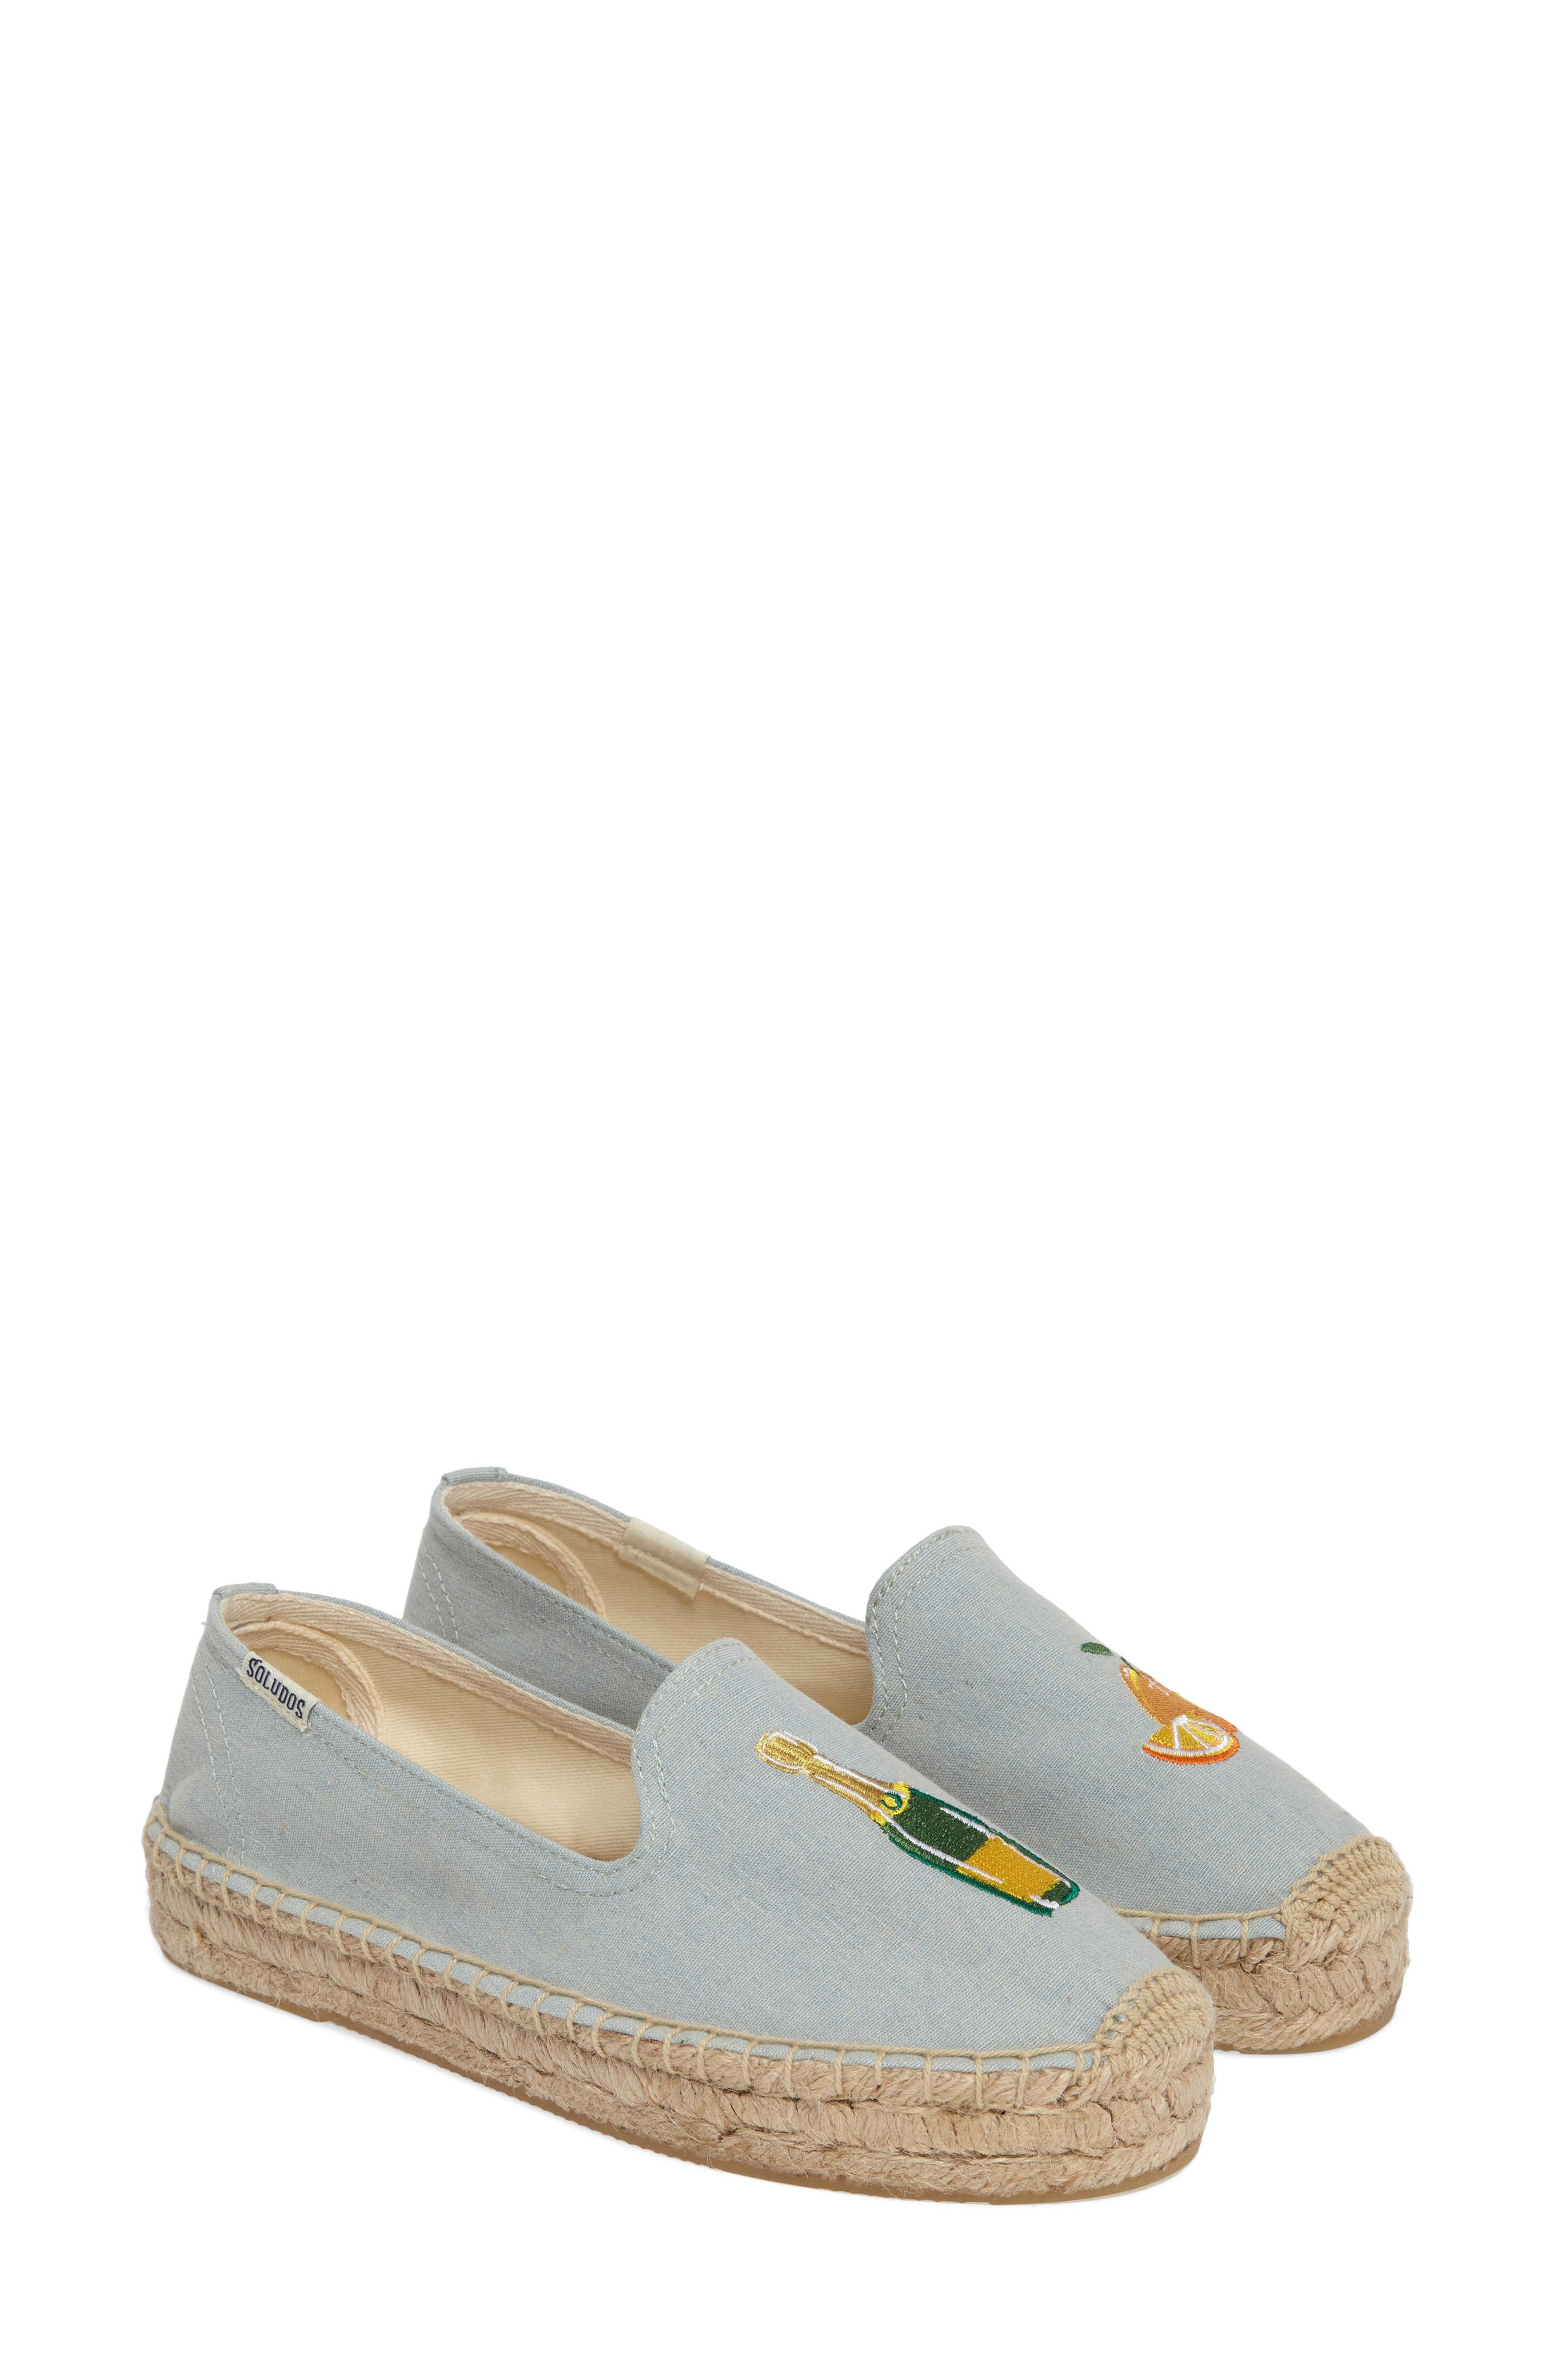 SOLUDOS Mimosa Embroidered Platform Espadrille, Main, color, 420